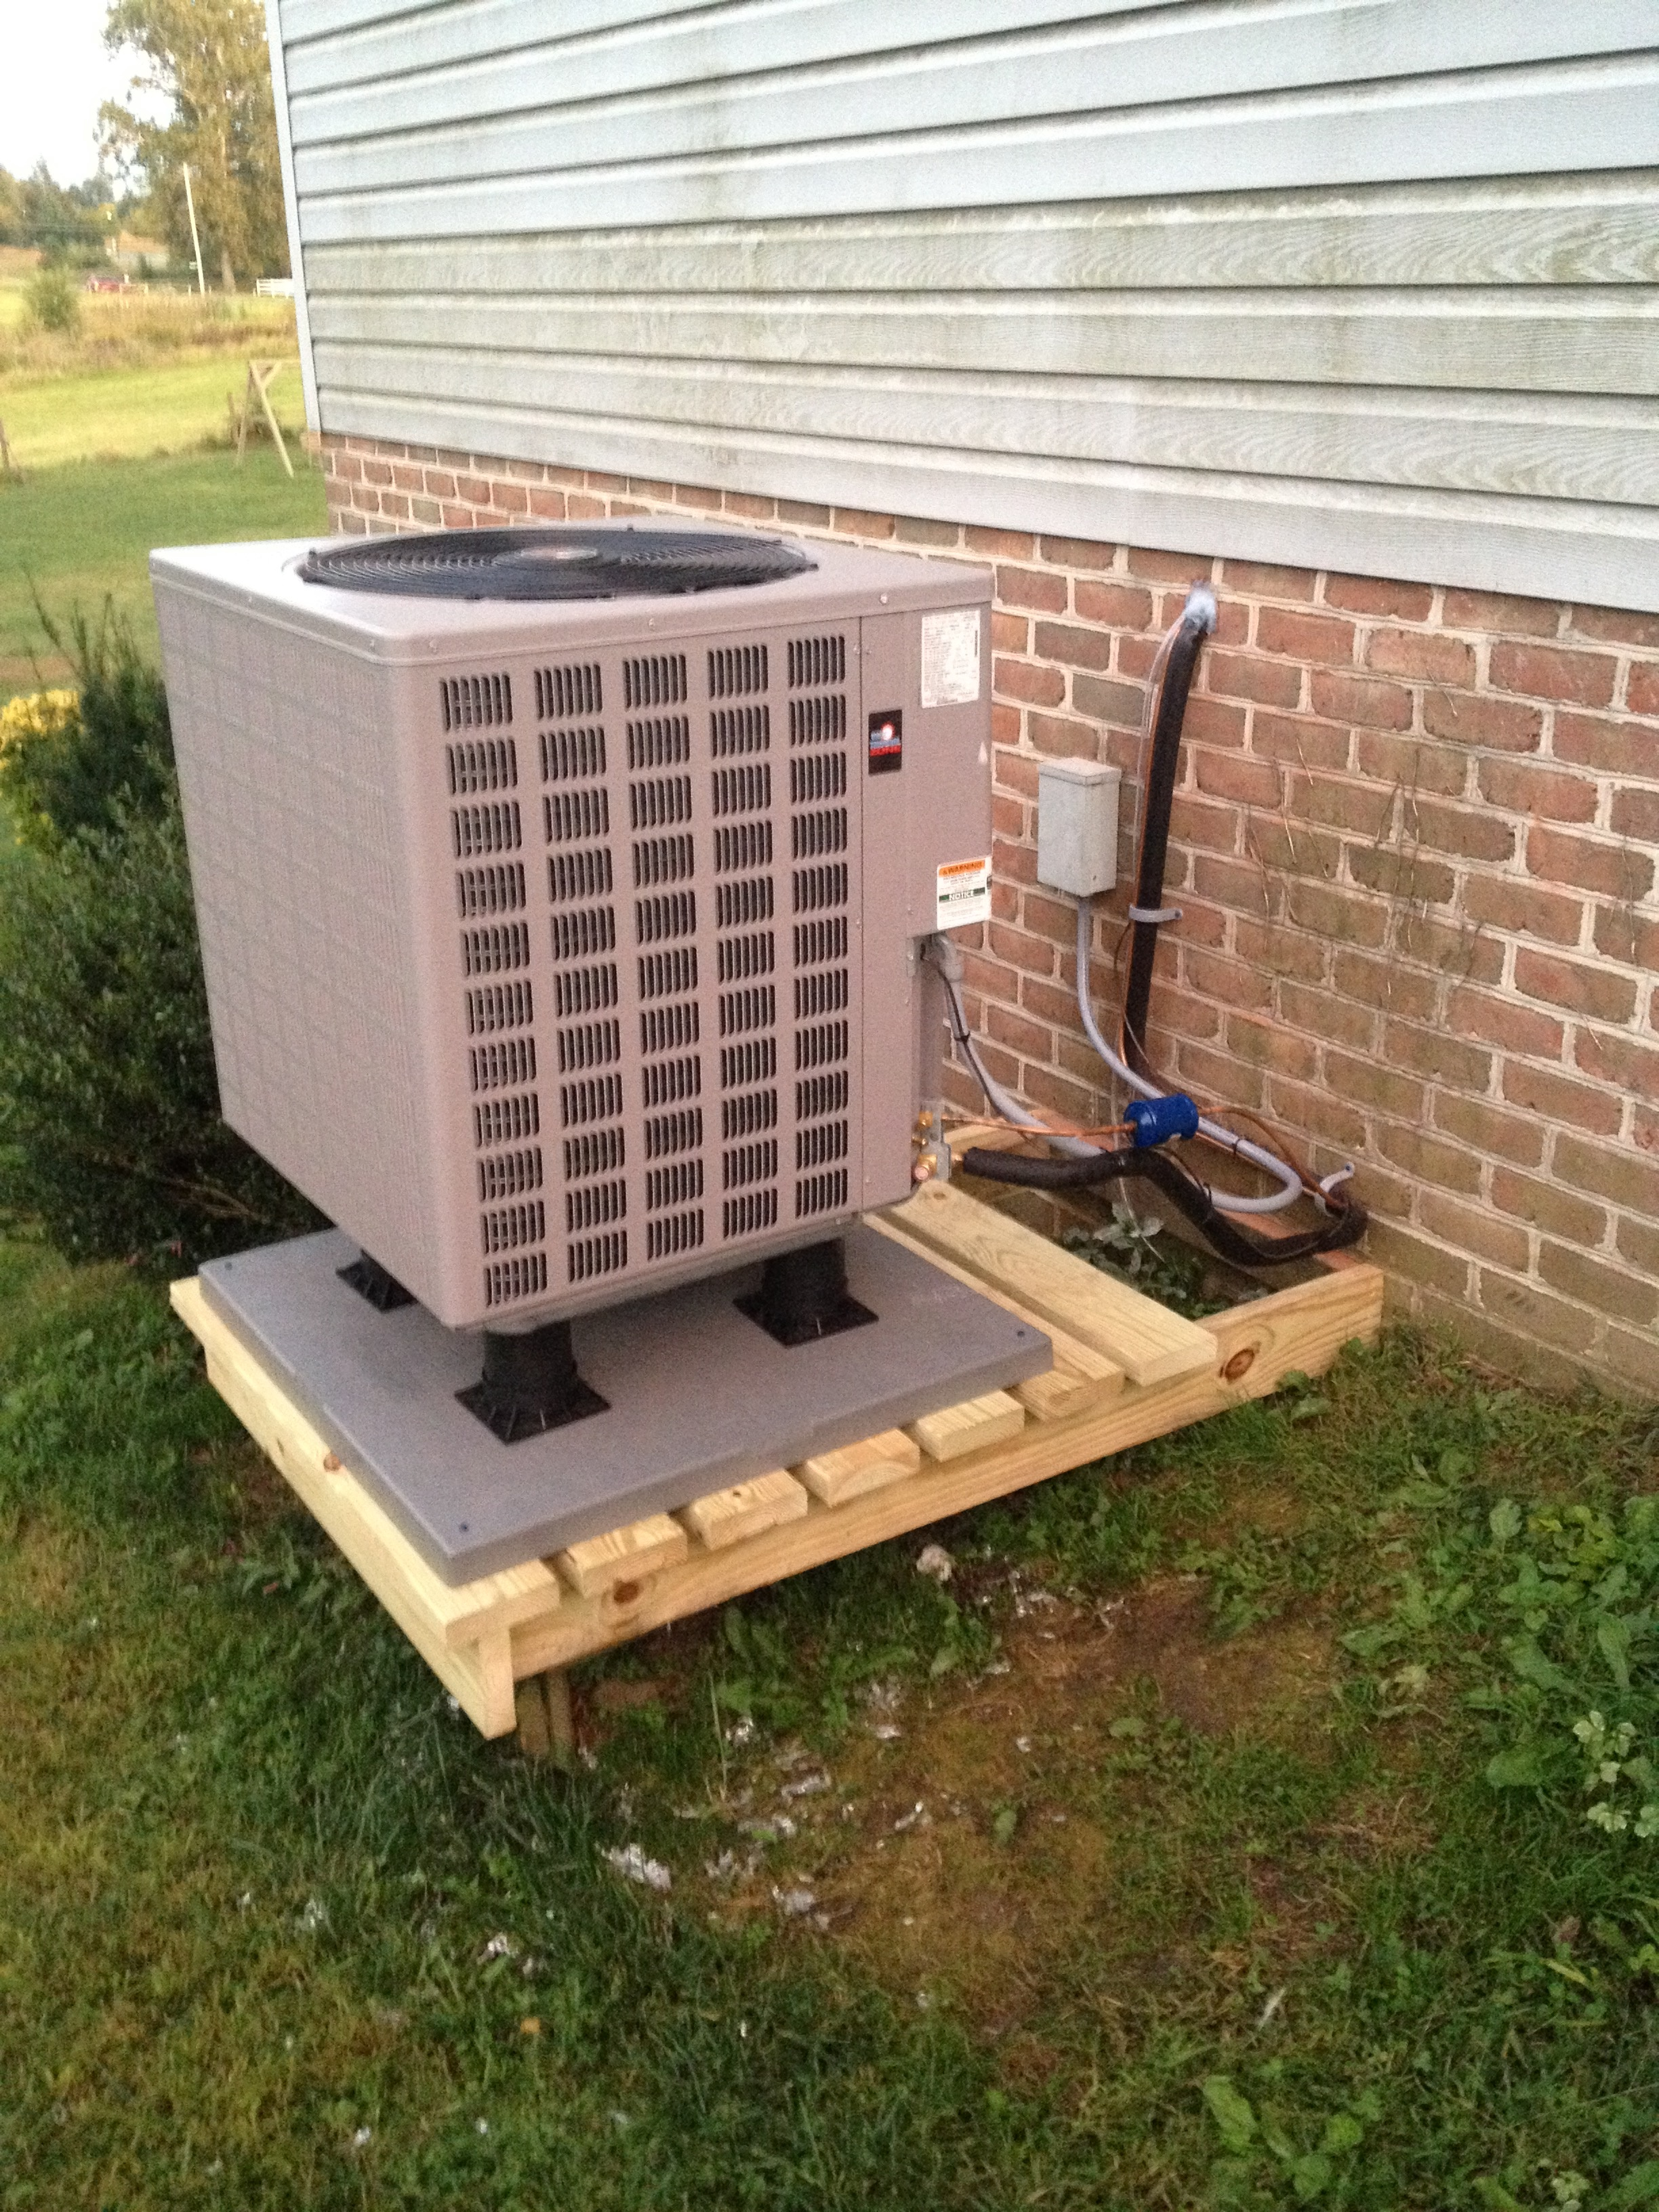 I built this nice platform out of treated lumber to get this heat pump unit off the ground.